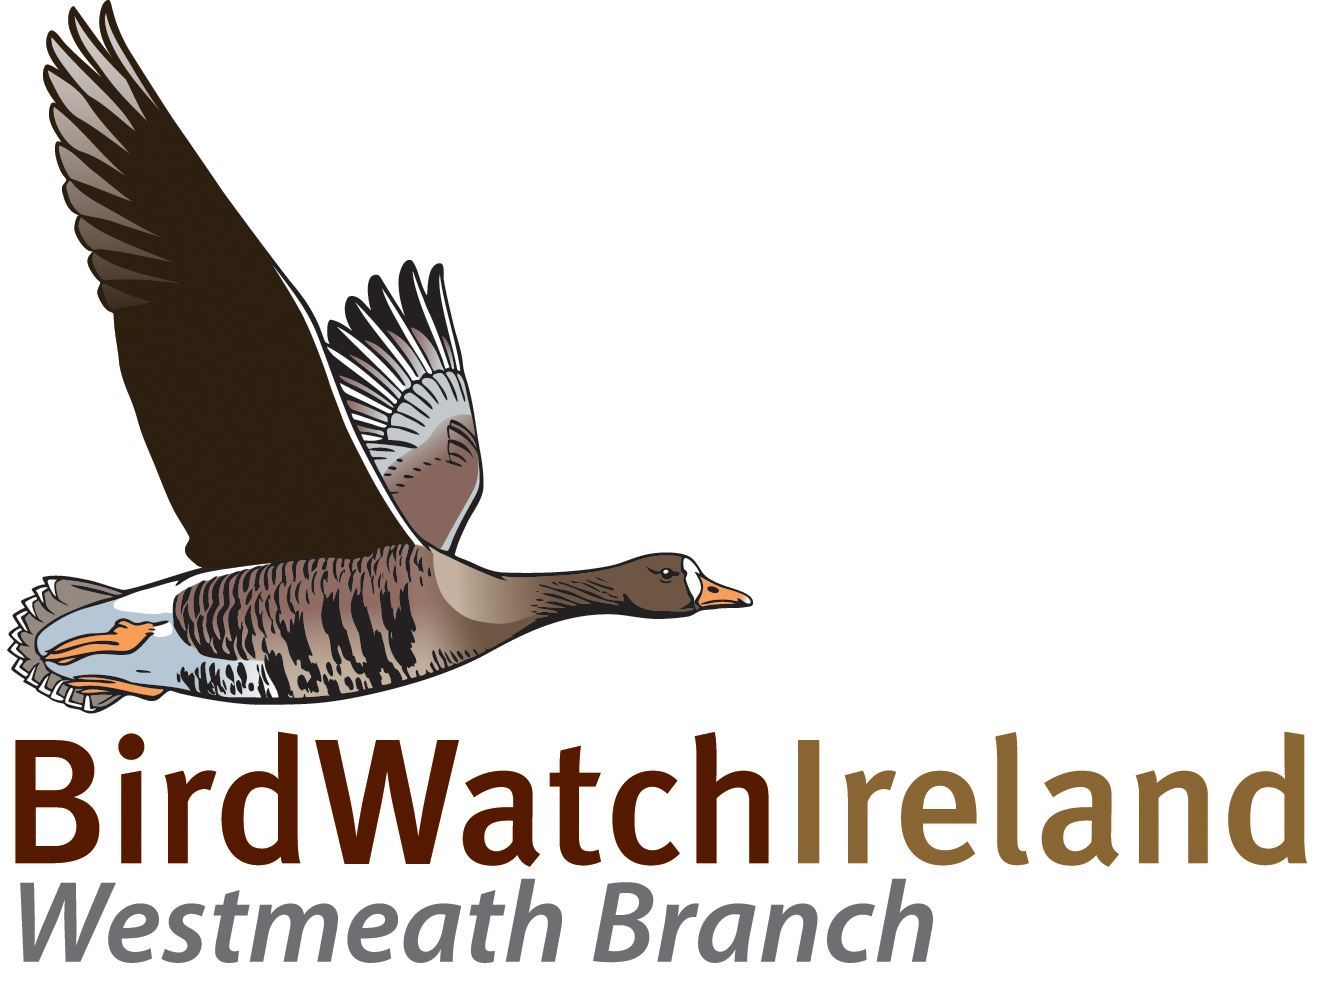 BirdWatch Ireland Westmeath Branch